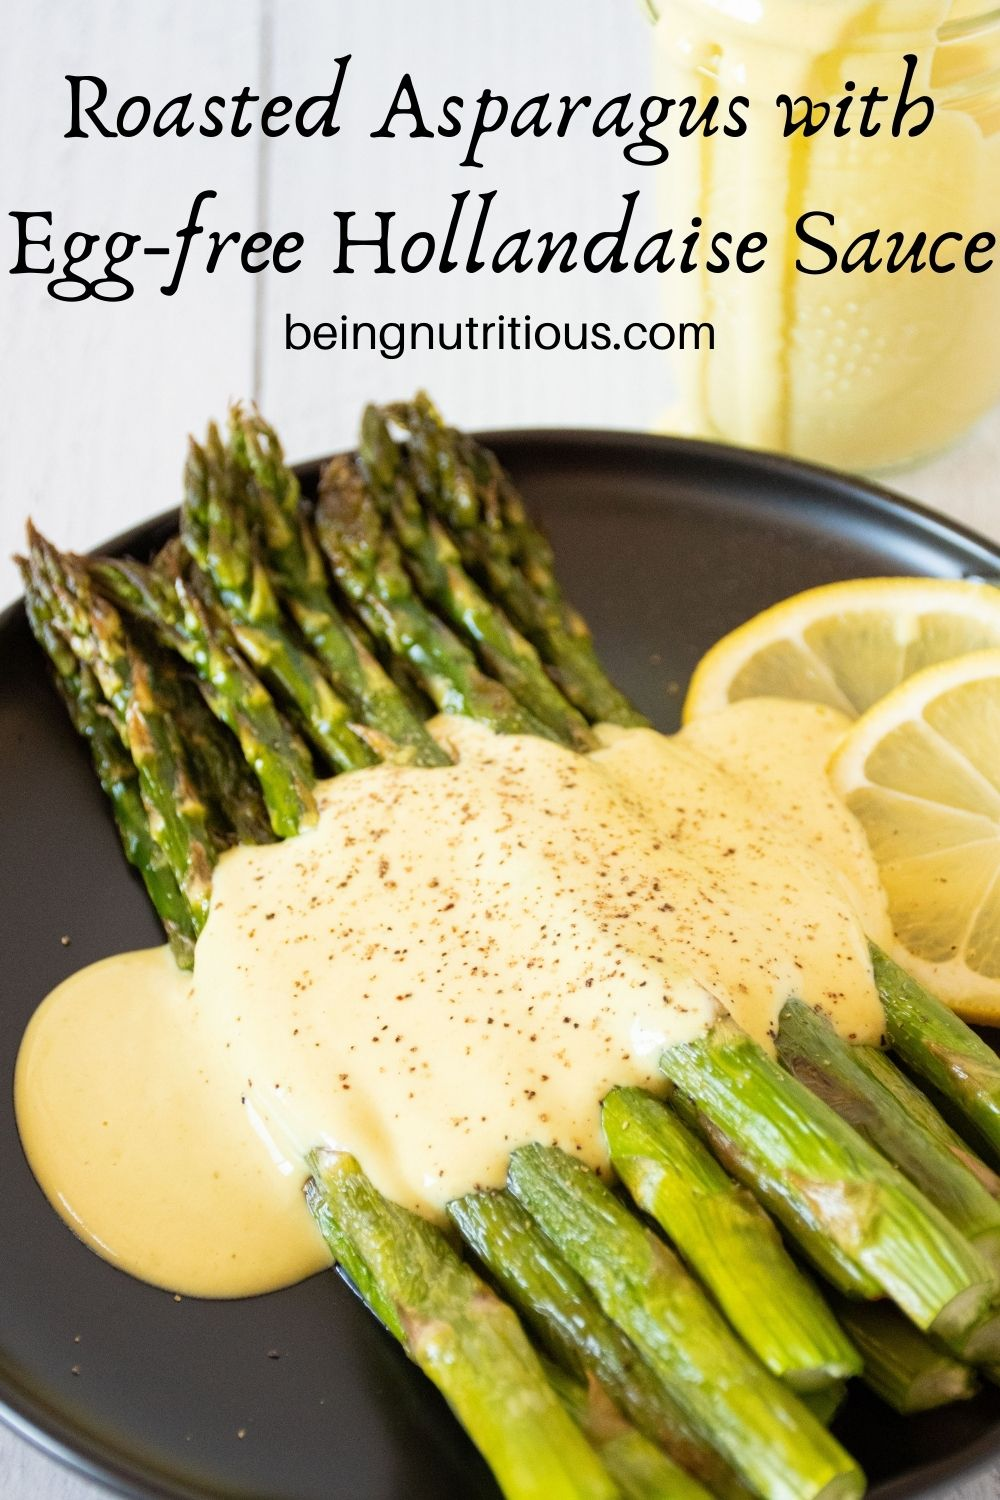 Plate of asparagus drizzled with sauce. Text overlay: Roasted Asparagus with Egg free Hollandaise Sauce.